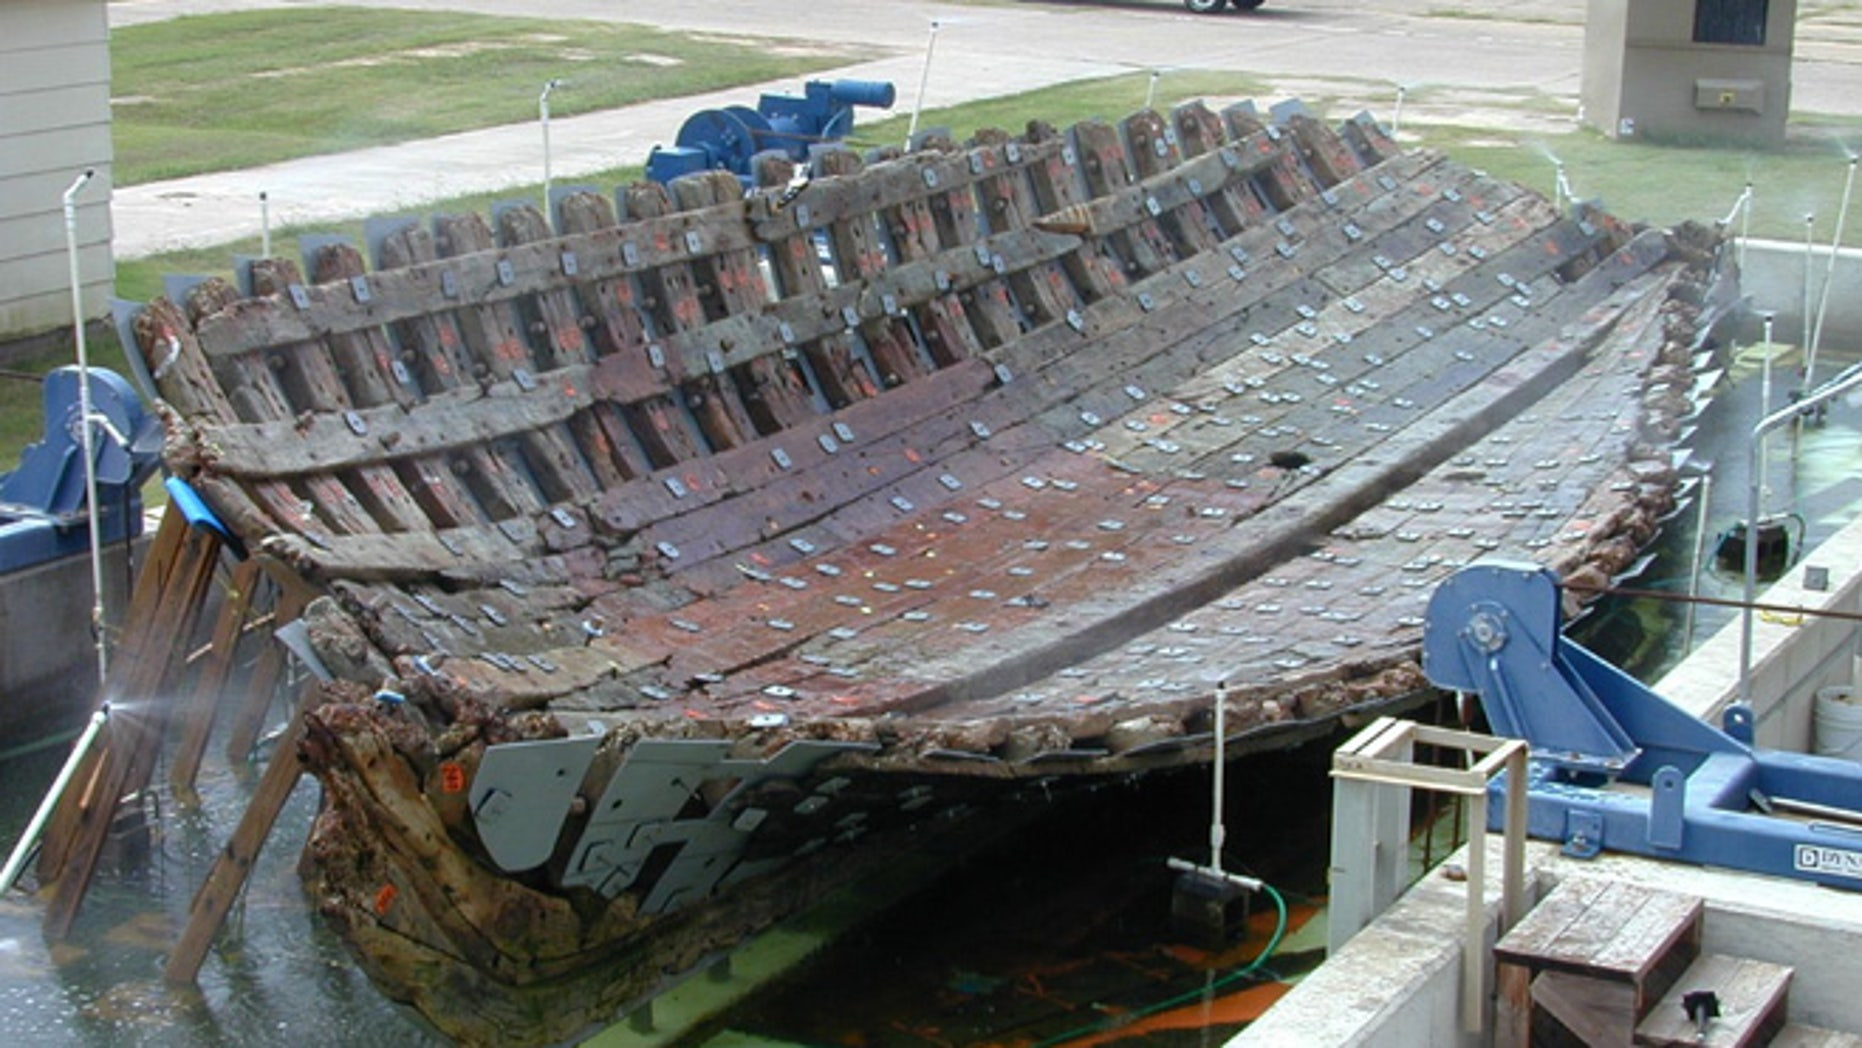 Researchers plan to rebuild the 54 ½-foot vessel, which will become the centerpiece of the Bob Bullock Texas State History Museum in Austin. The supply ship was built in 1684 and sank two years later in a storm on Matagorda Bay, about midway between Galveston and Corpus Christi, Texas.